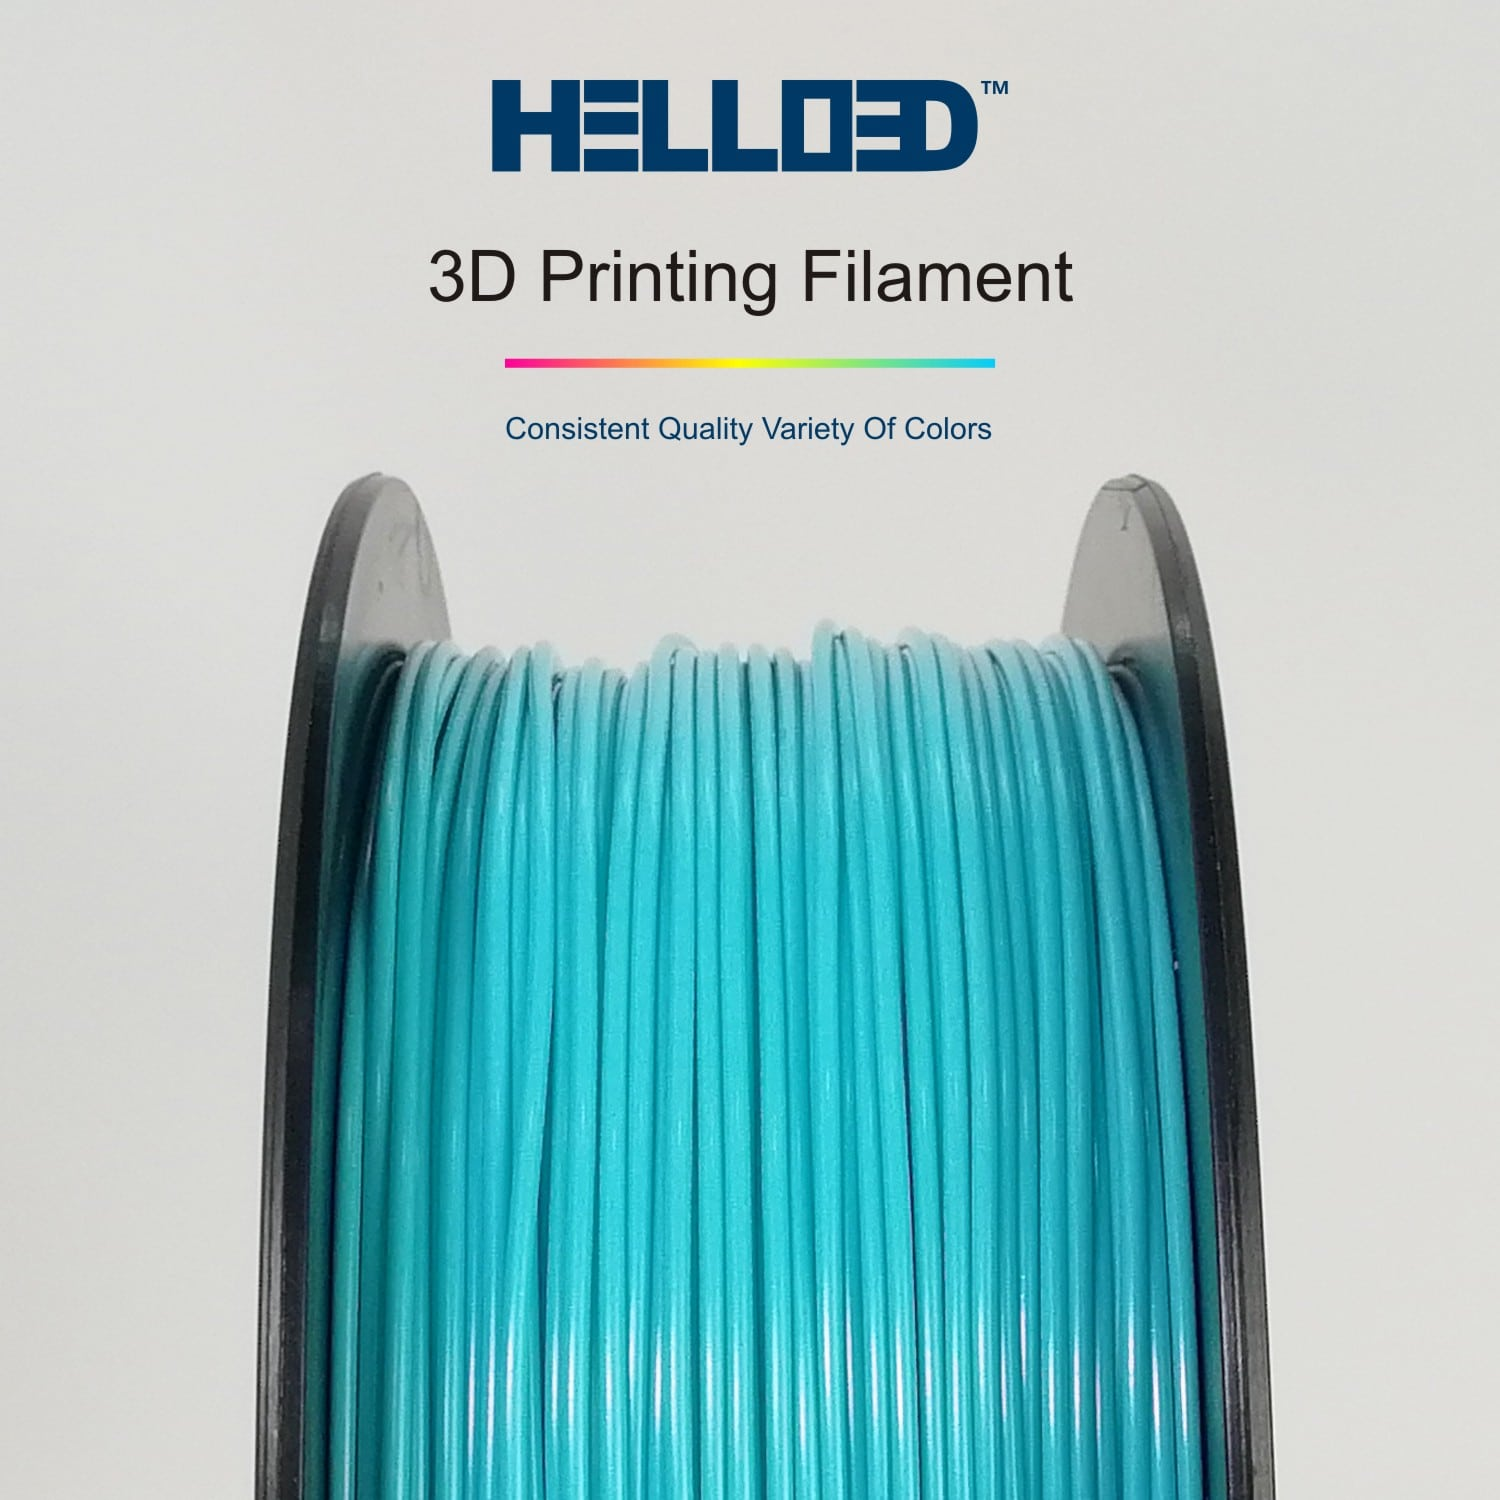 HELLO3D 3D Printer Filament - 1.75mm - Sky Blue - 1Kg